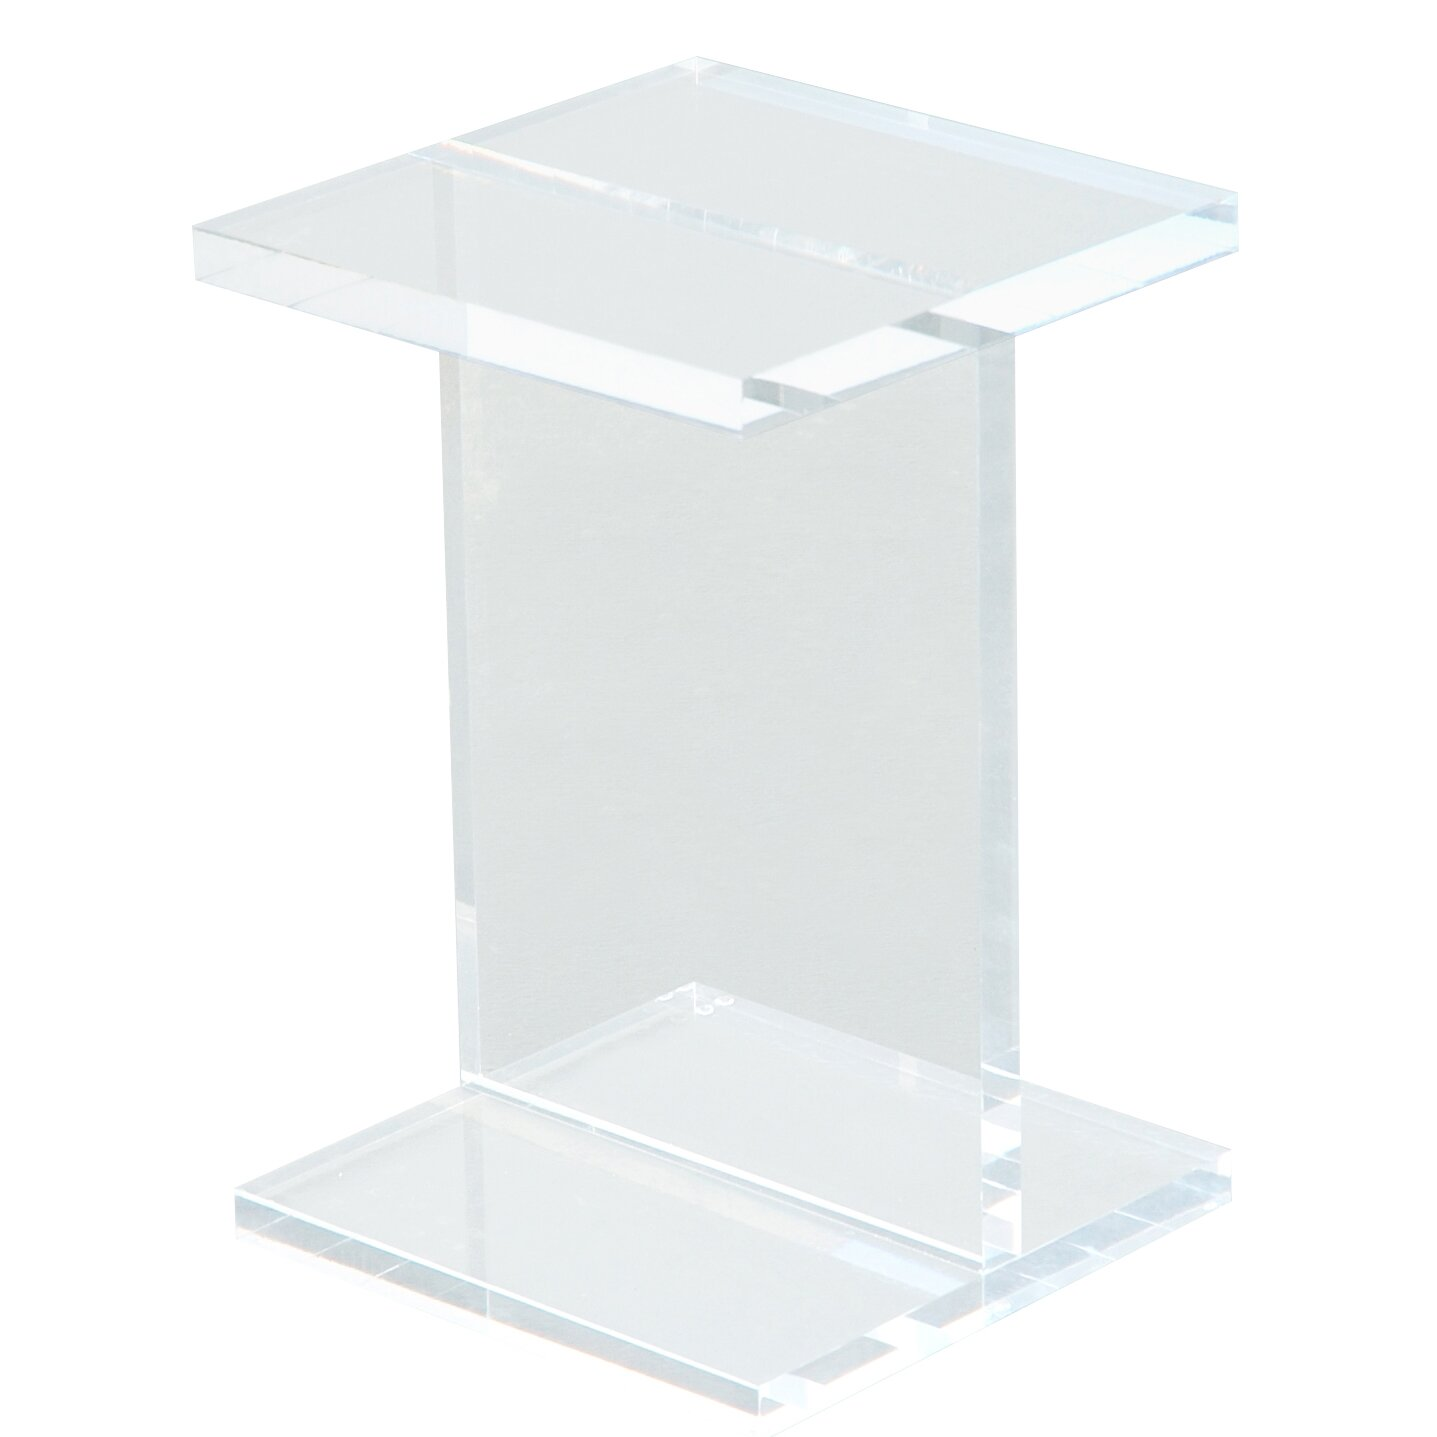 lucite end table - acrylic ibeam end table reviews allmodern